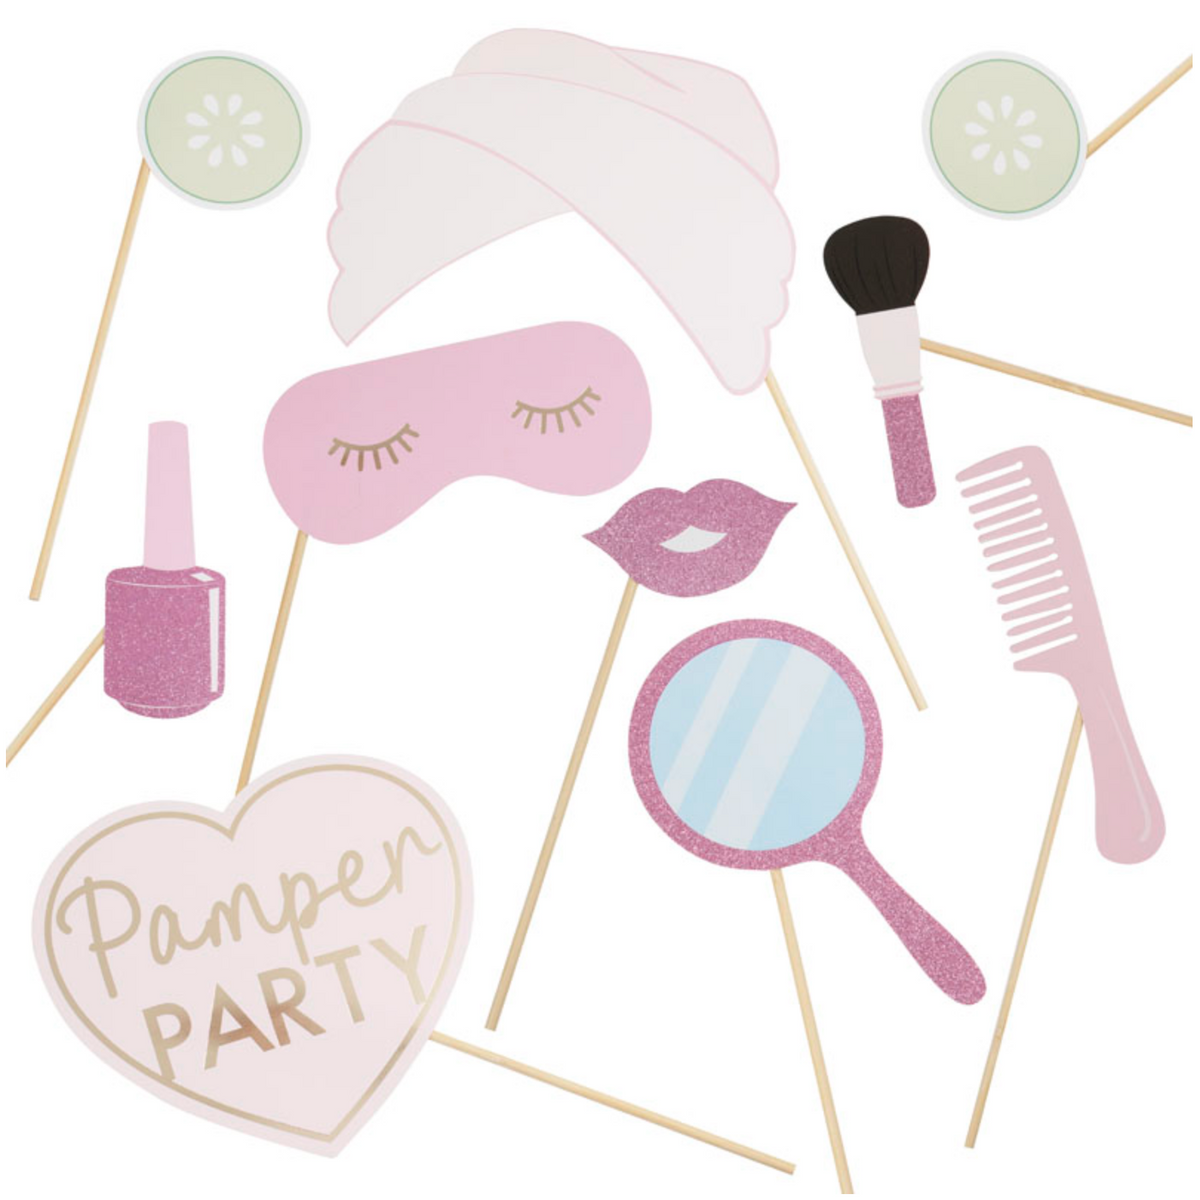 Sleepover / Pamper Party - Photobooth Props